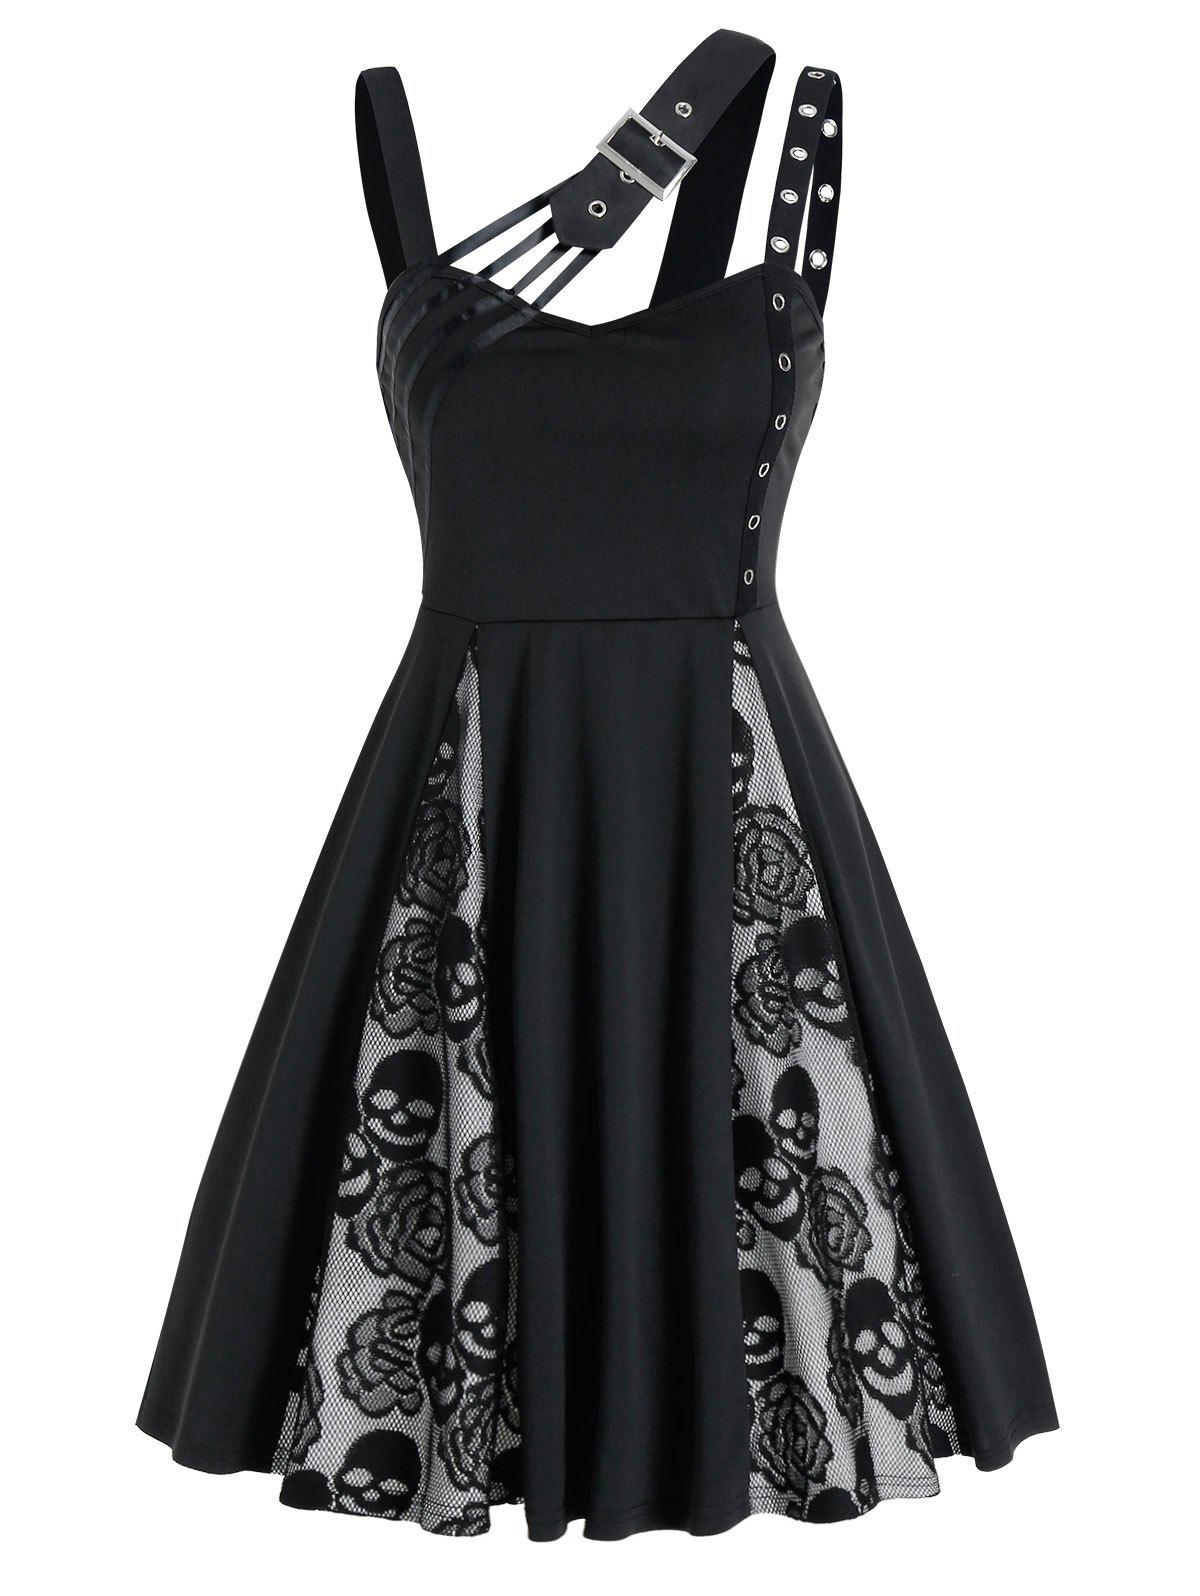 Halloween Skull Flower Lace Insert Sleeveless Dress - BLACK L